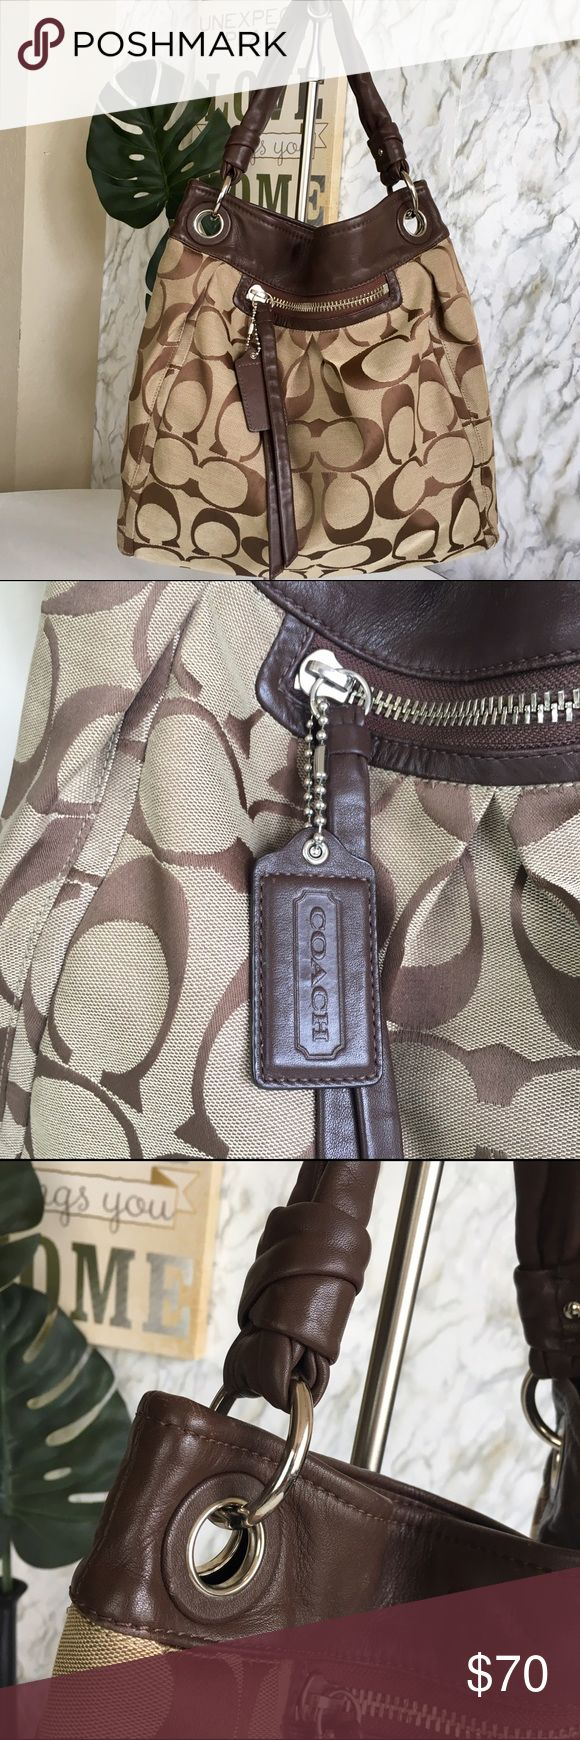 Coach hobo bag Good used condition, leather and canvas👜no bad odor, No smoking Home 🏡 Normal mark of use 👜 Coach Bags Shoulder Bags